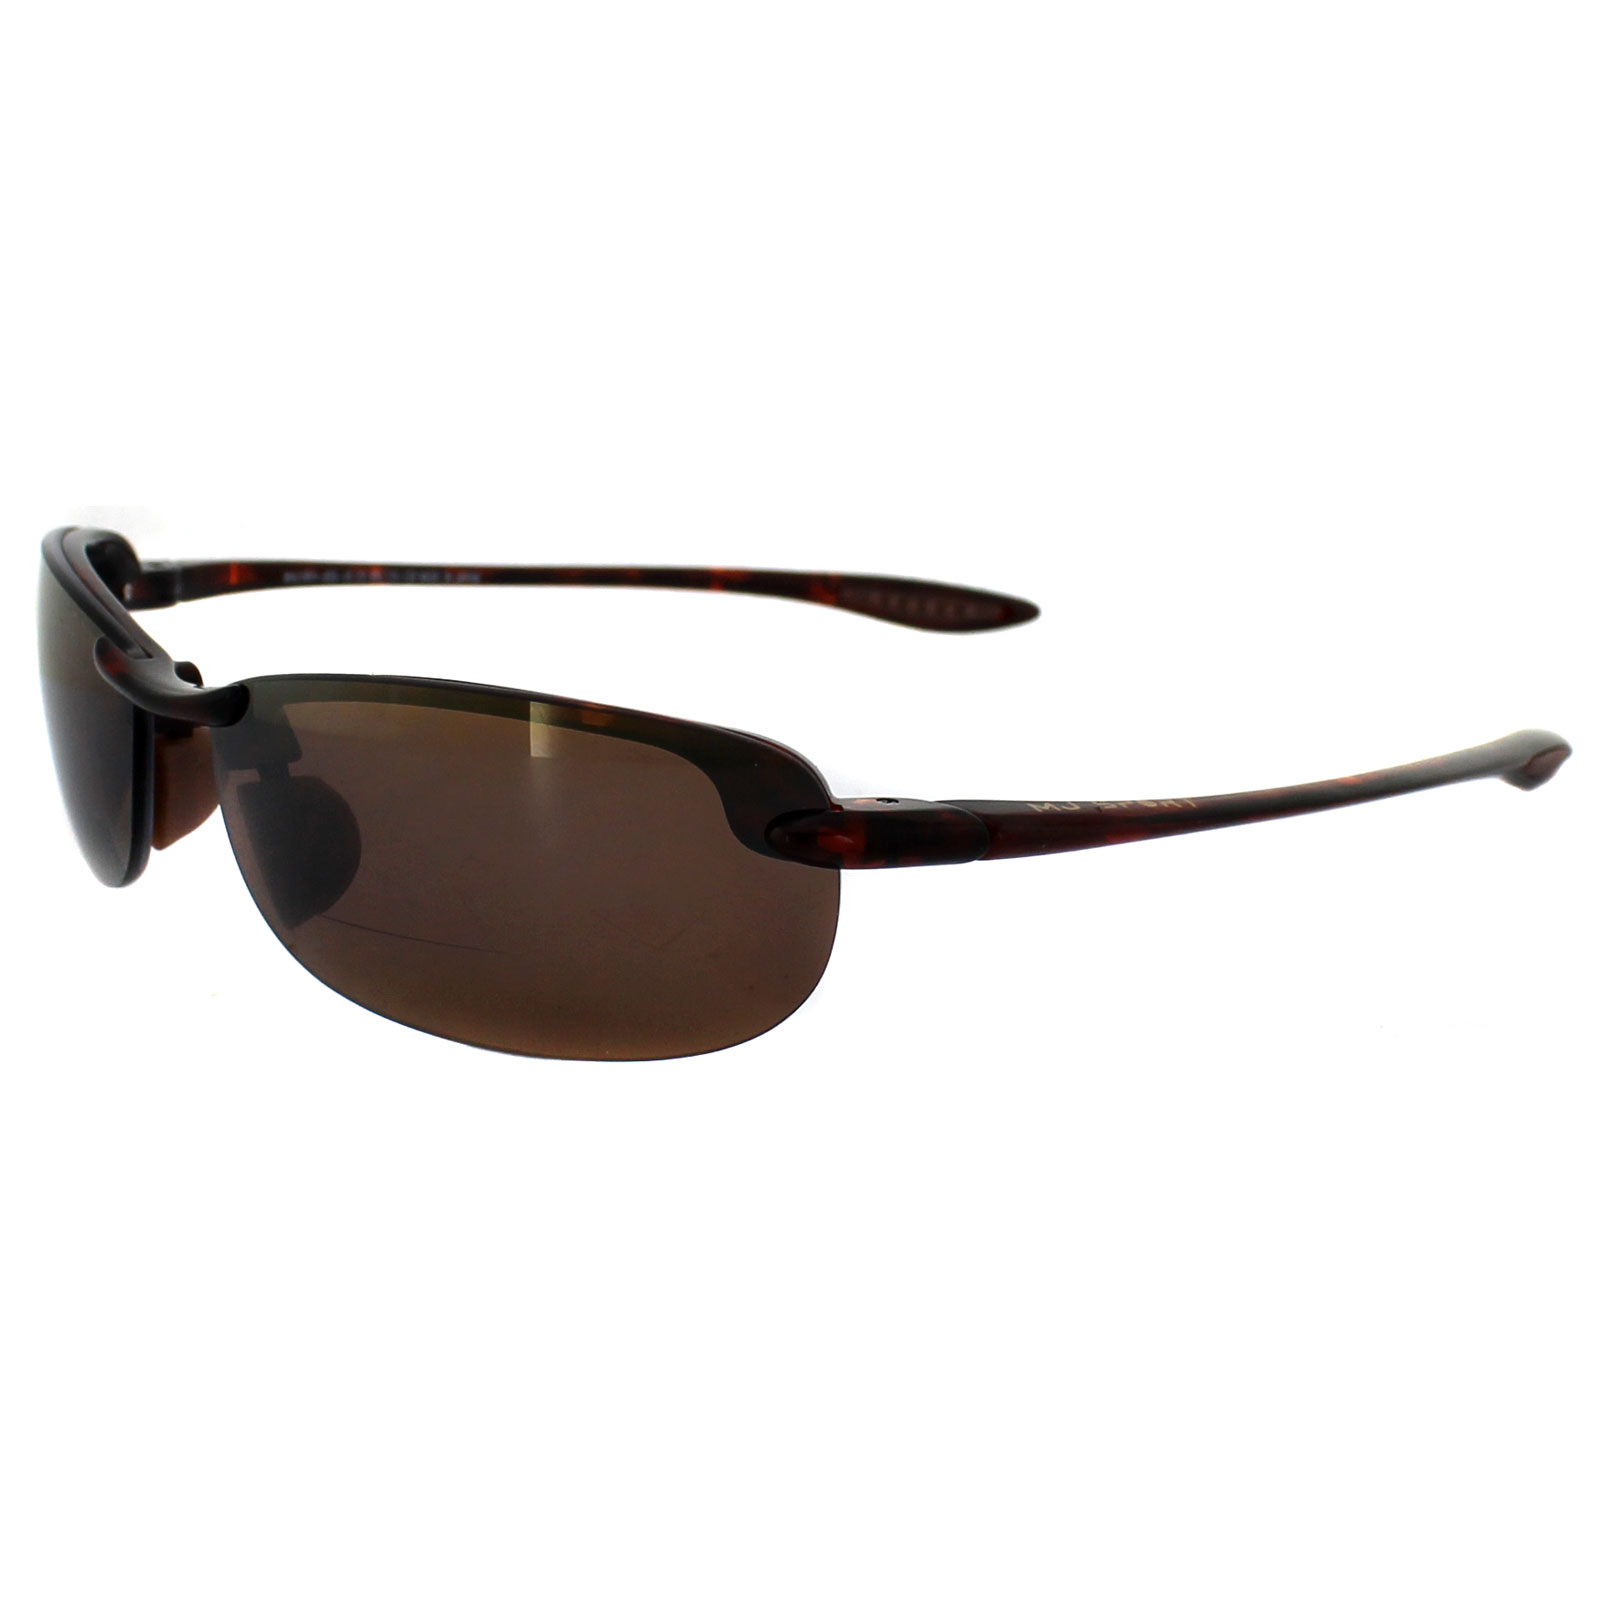 4e188efb242 Sentinel Maui Jim Sunglasses Makaha Readers H805-1020 Tortoise Bronze  Polarized +2.00